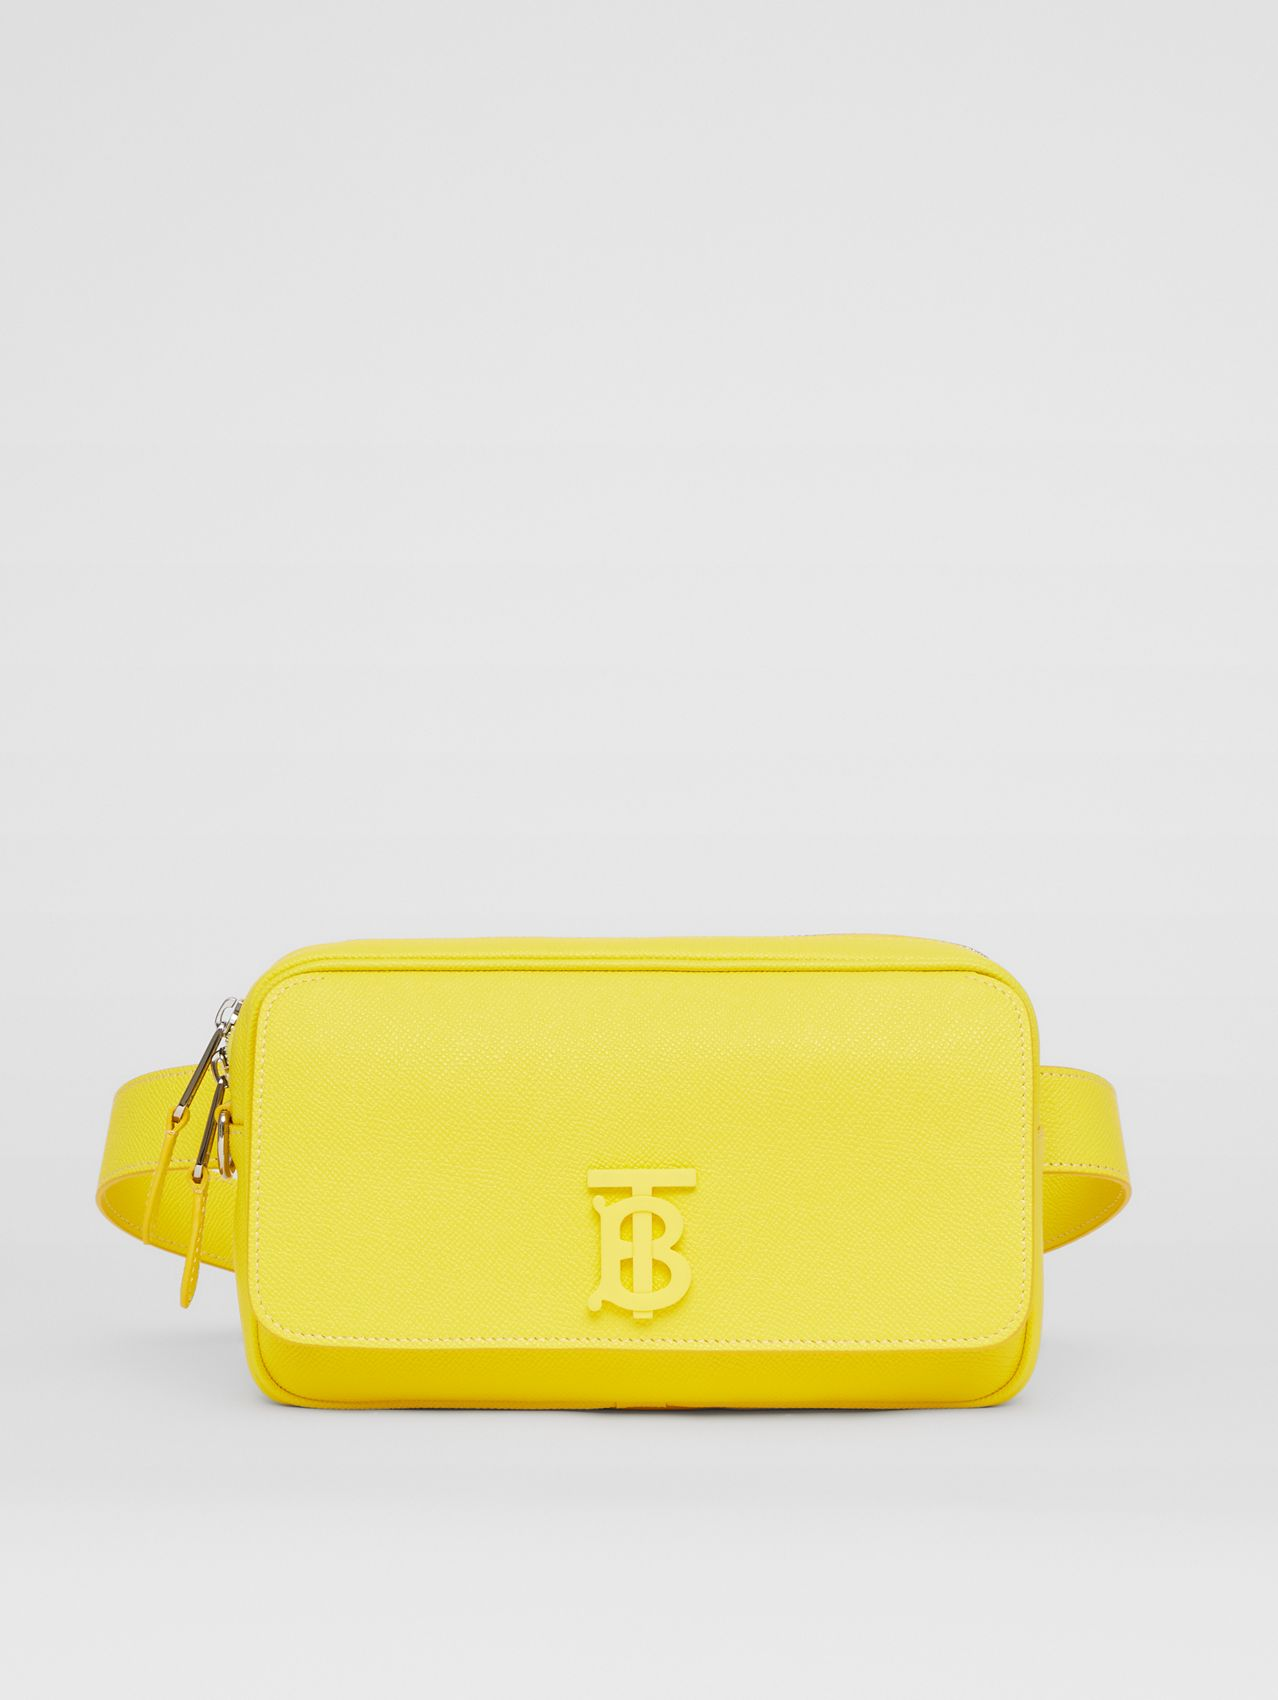 Monogram Motif Grainy Leather Bum Bag in Marigold Yellow